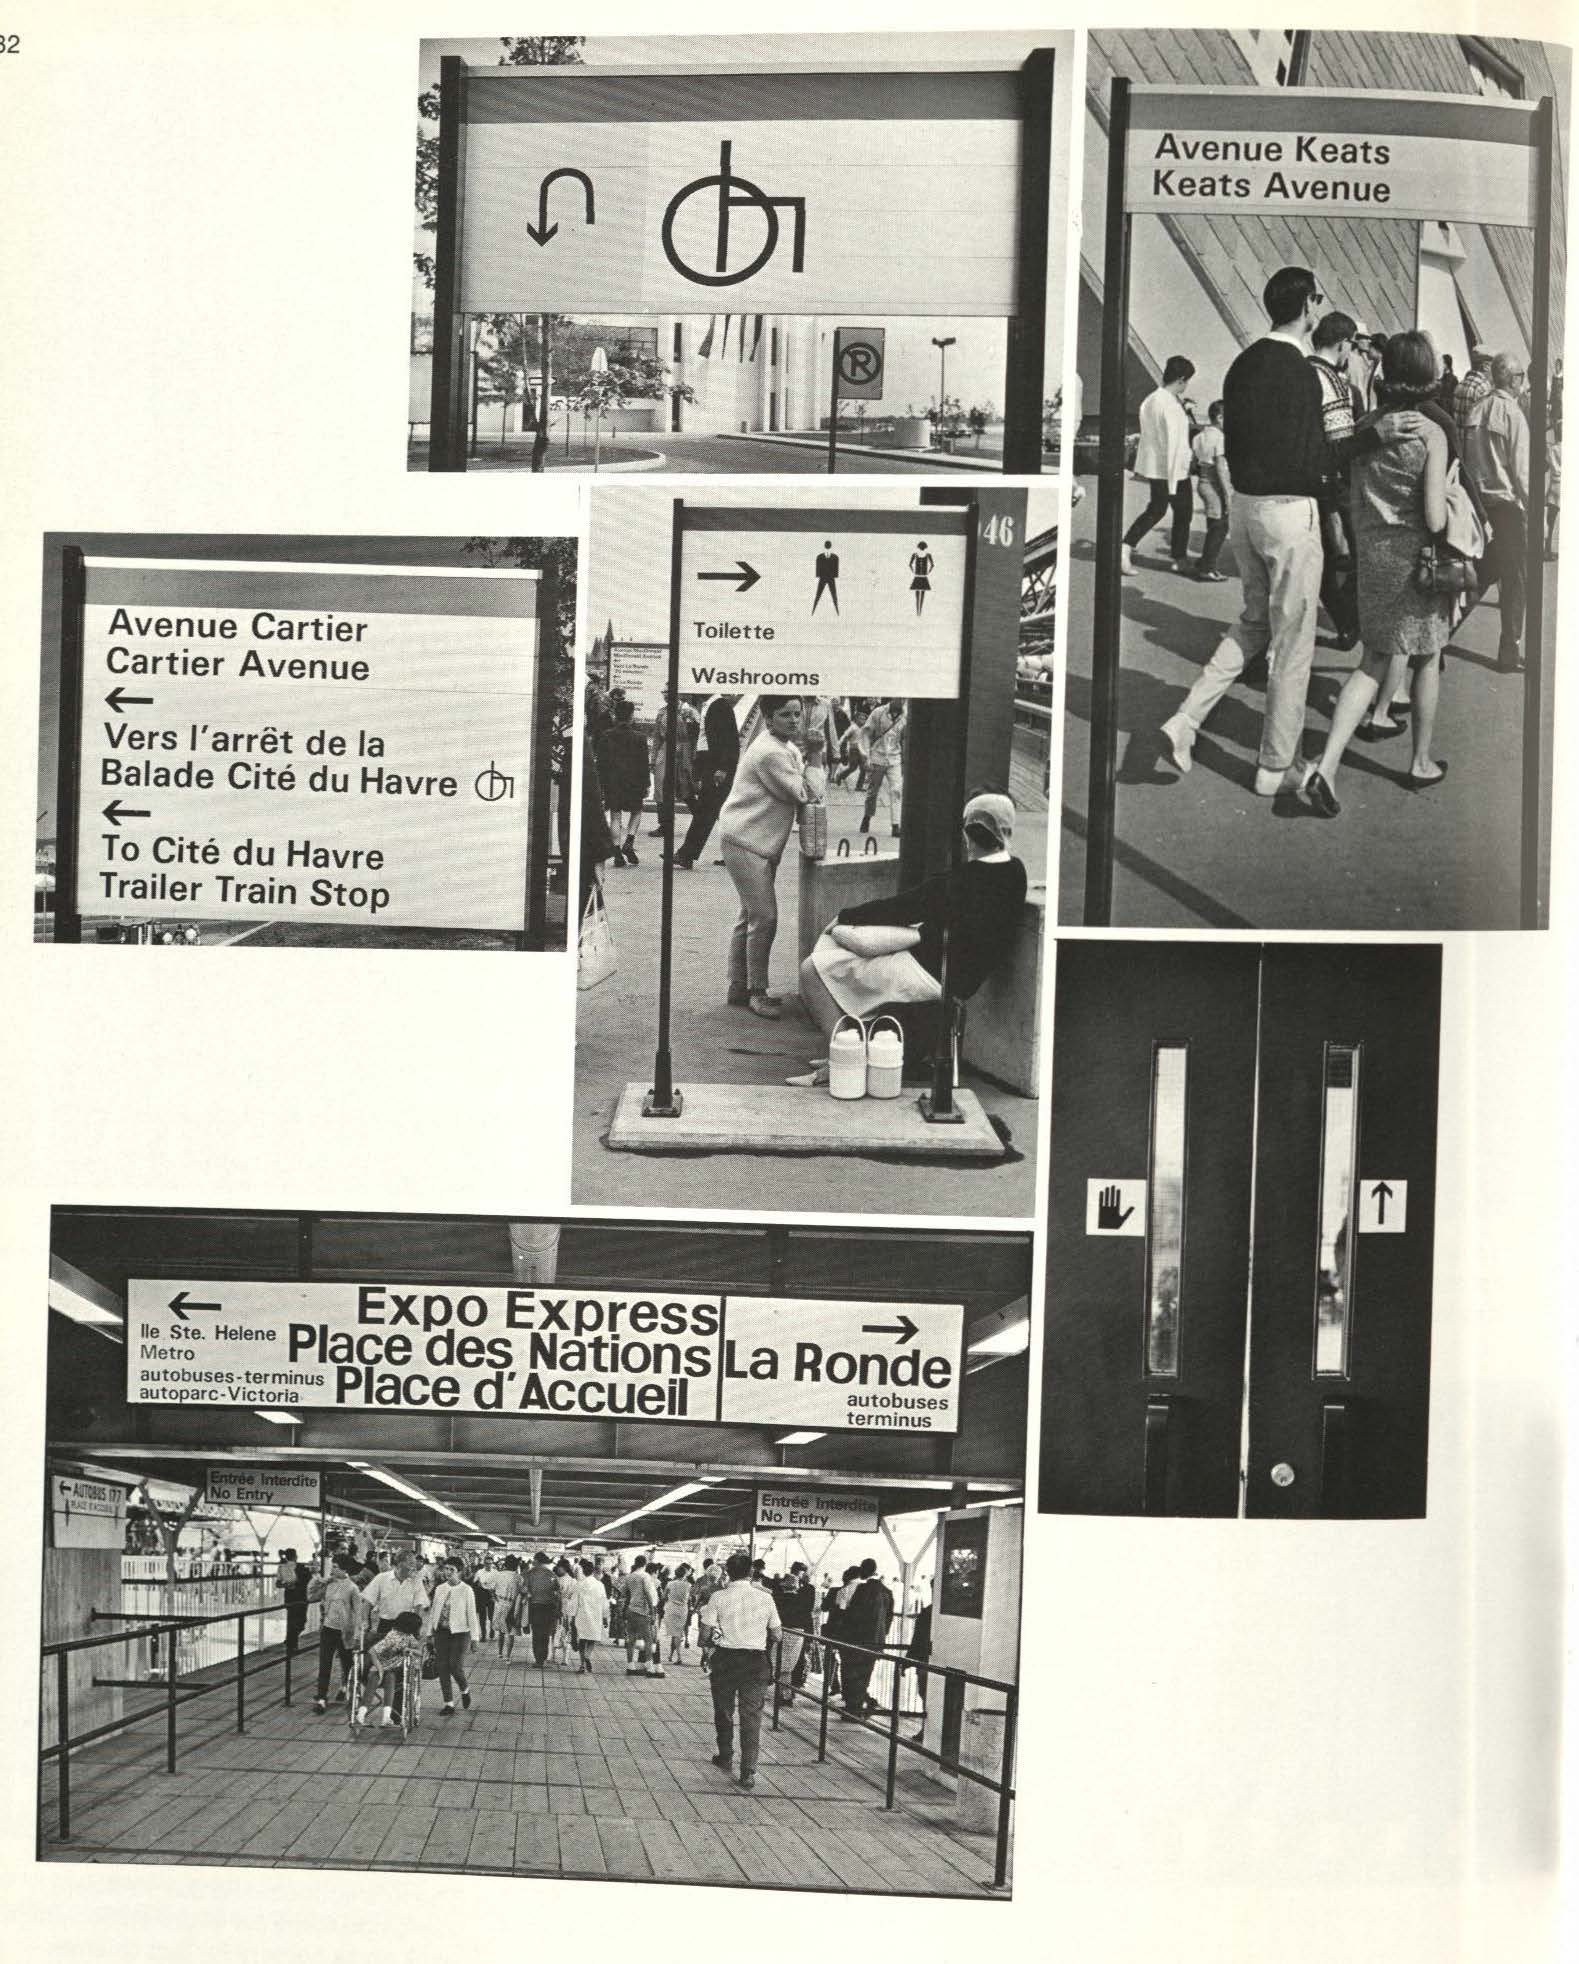 Paul Arthur's wayfinding signage at Expo 67 includes the handicapped symbol seen on the top left. Photographs by John de Visser, Harold Whyte, Peter Varley in  This was Expo  by Robert Fulford (Toronto: McClelland and Stewart), 1968 © Canadian Centre for Architecture